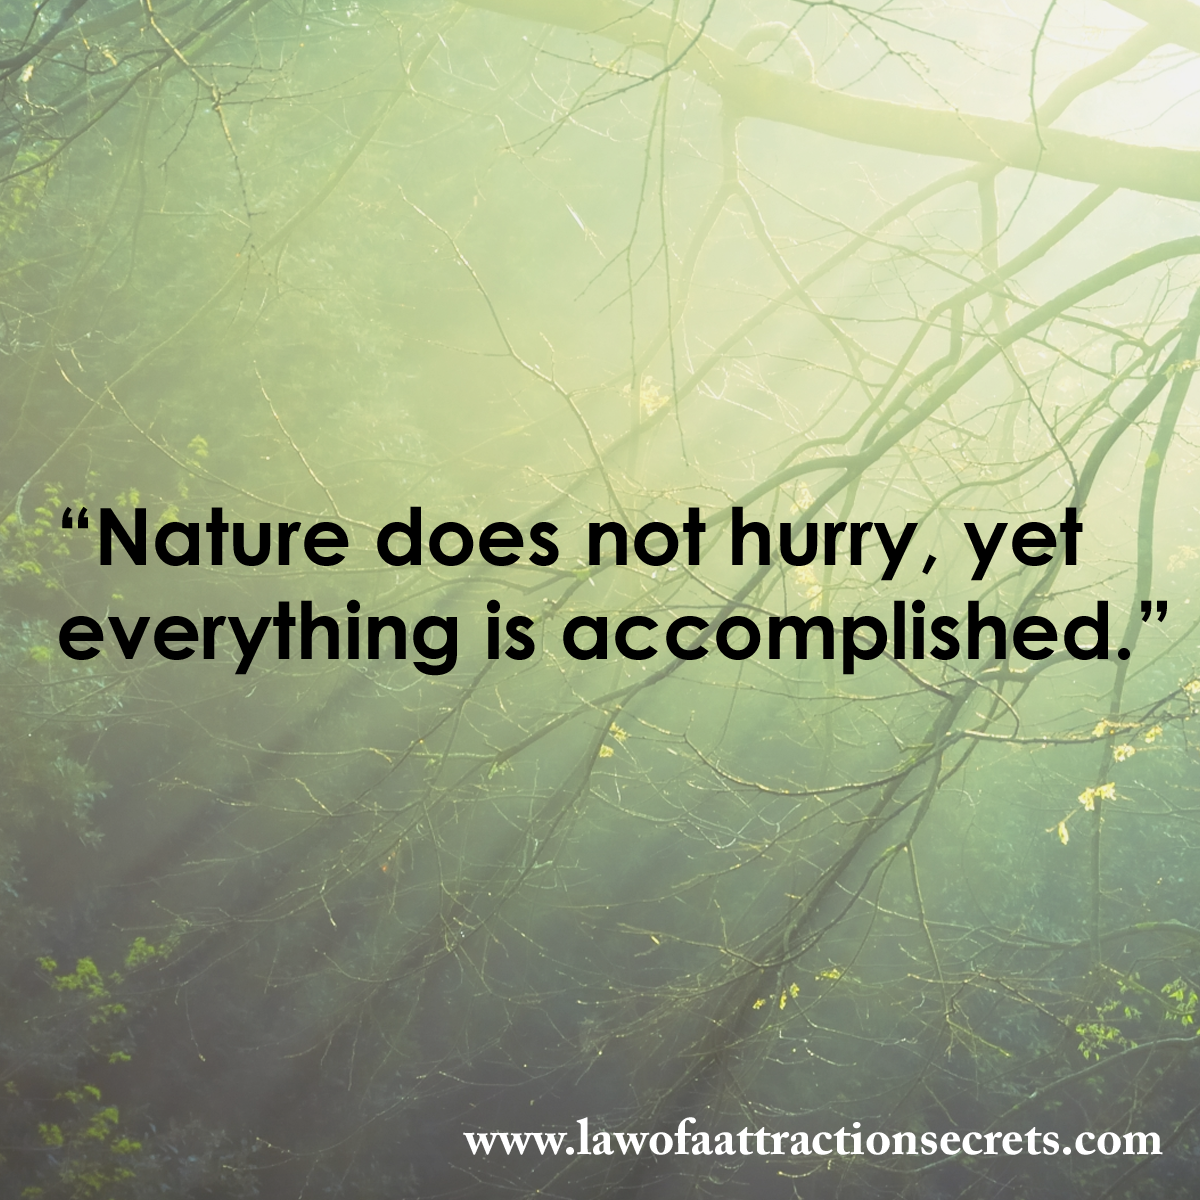 Nature does not hurry, yet everything is accomplished. http://t.co/OTSQAIby9u http://t.co/CqvBAcTjz6